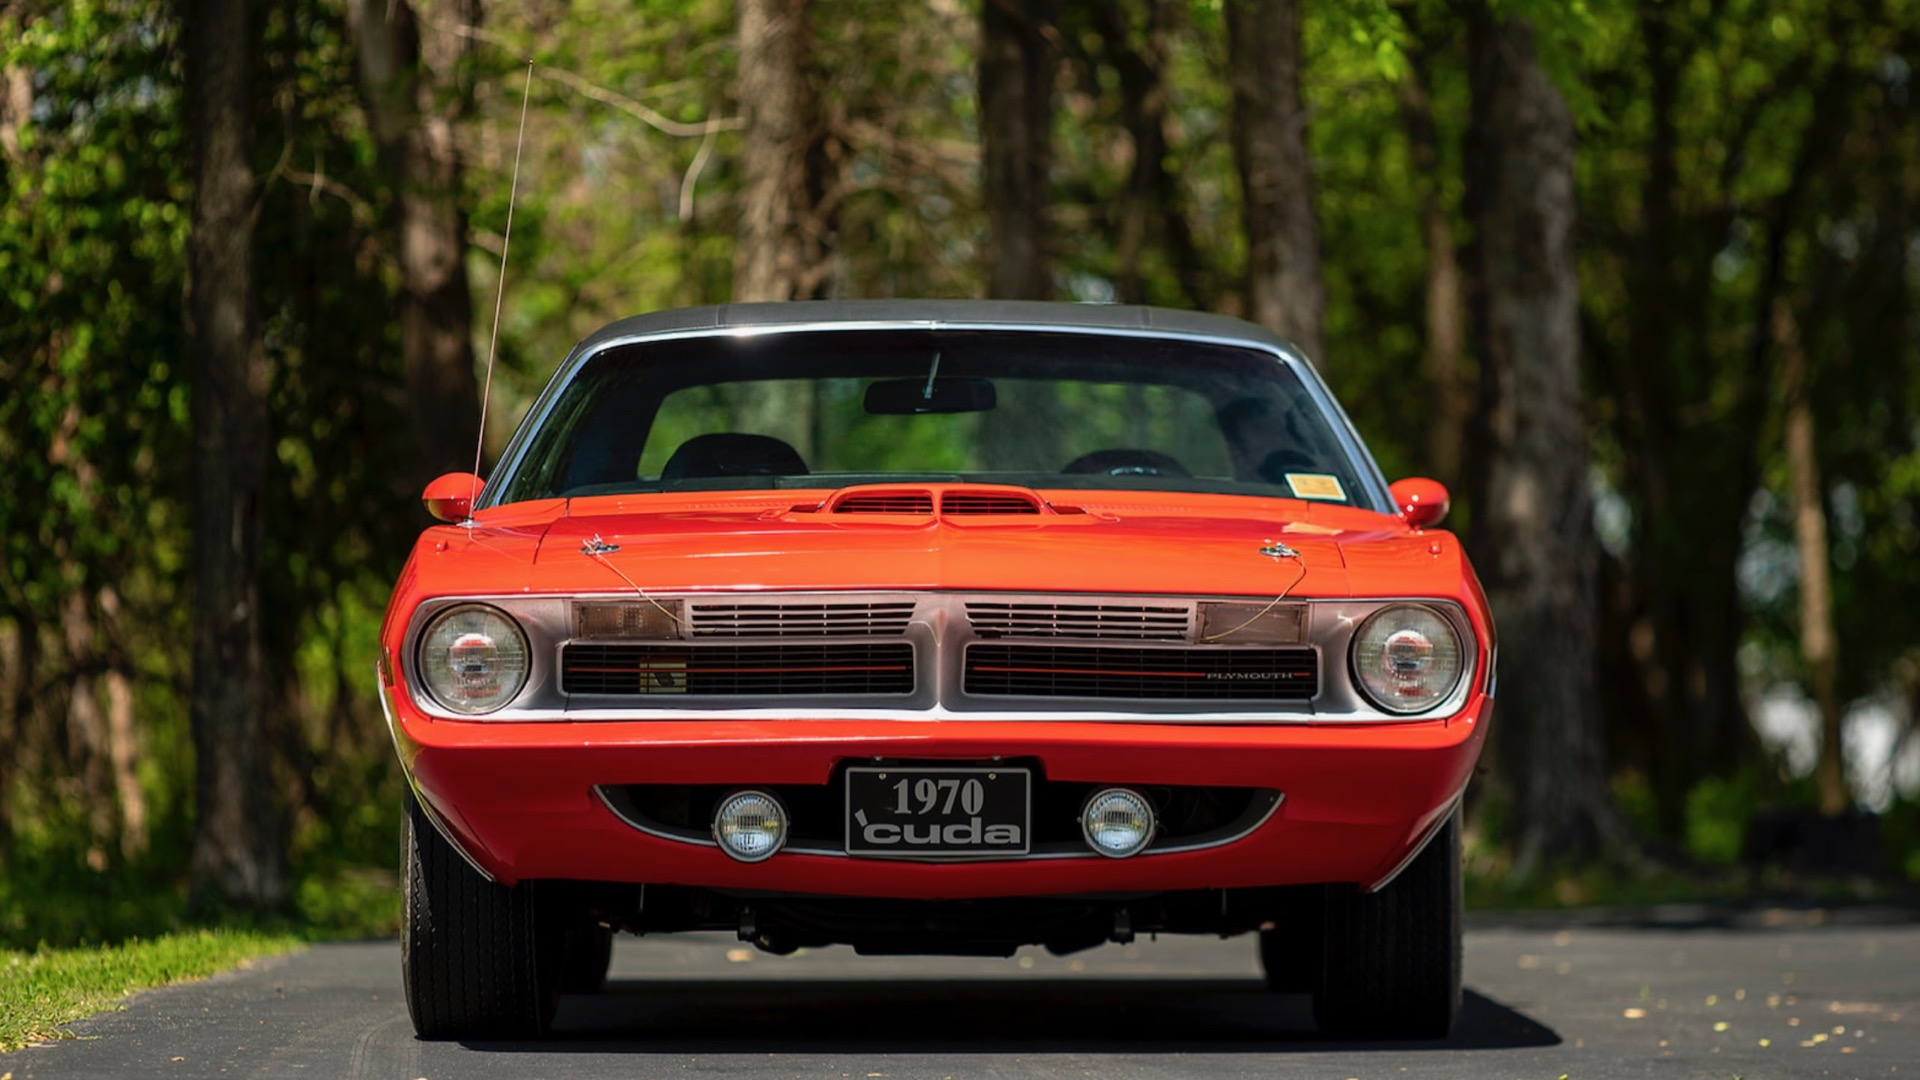 The 1970 Plymouth Cuda is up for auction